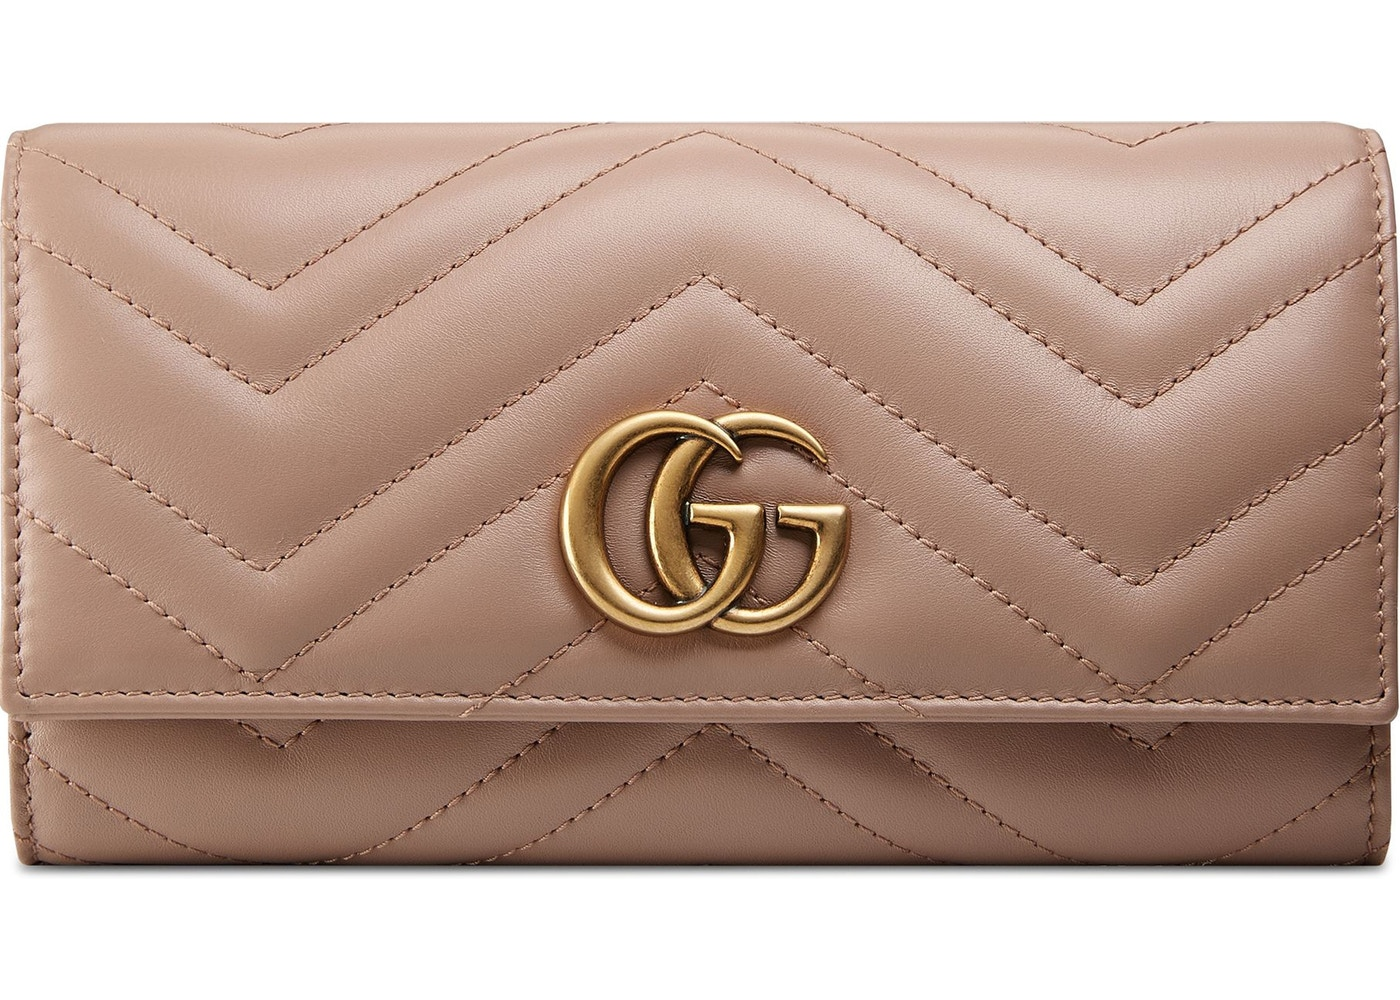 59985174413822 Gucci Continental Wallet Marmont Matelasse GG Neutral. Matelasse GG Neutral